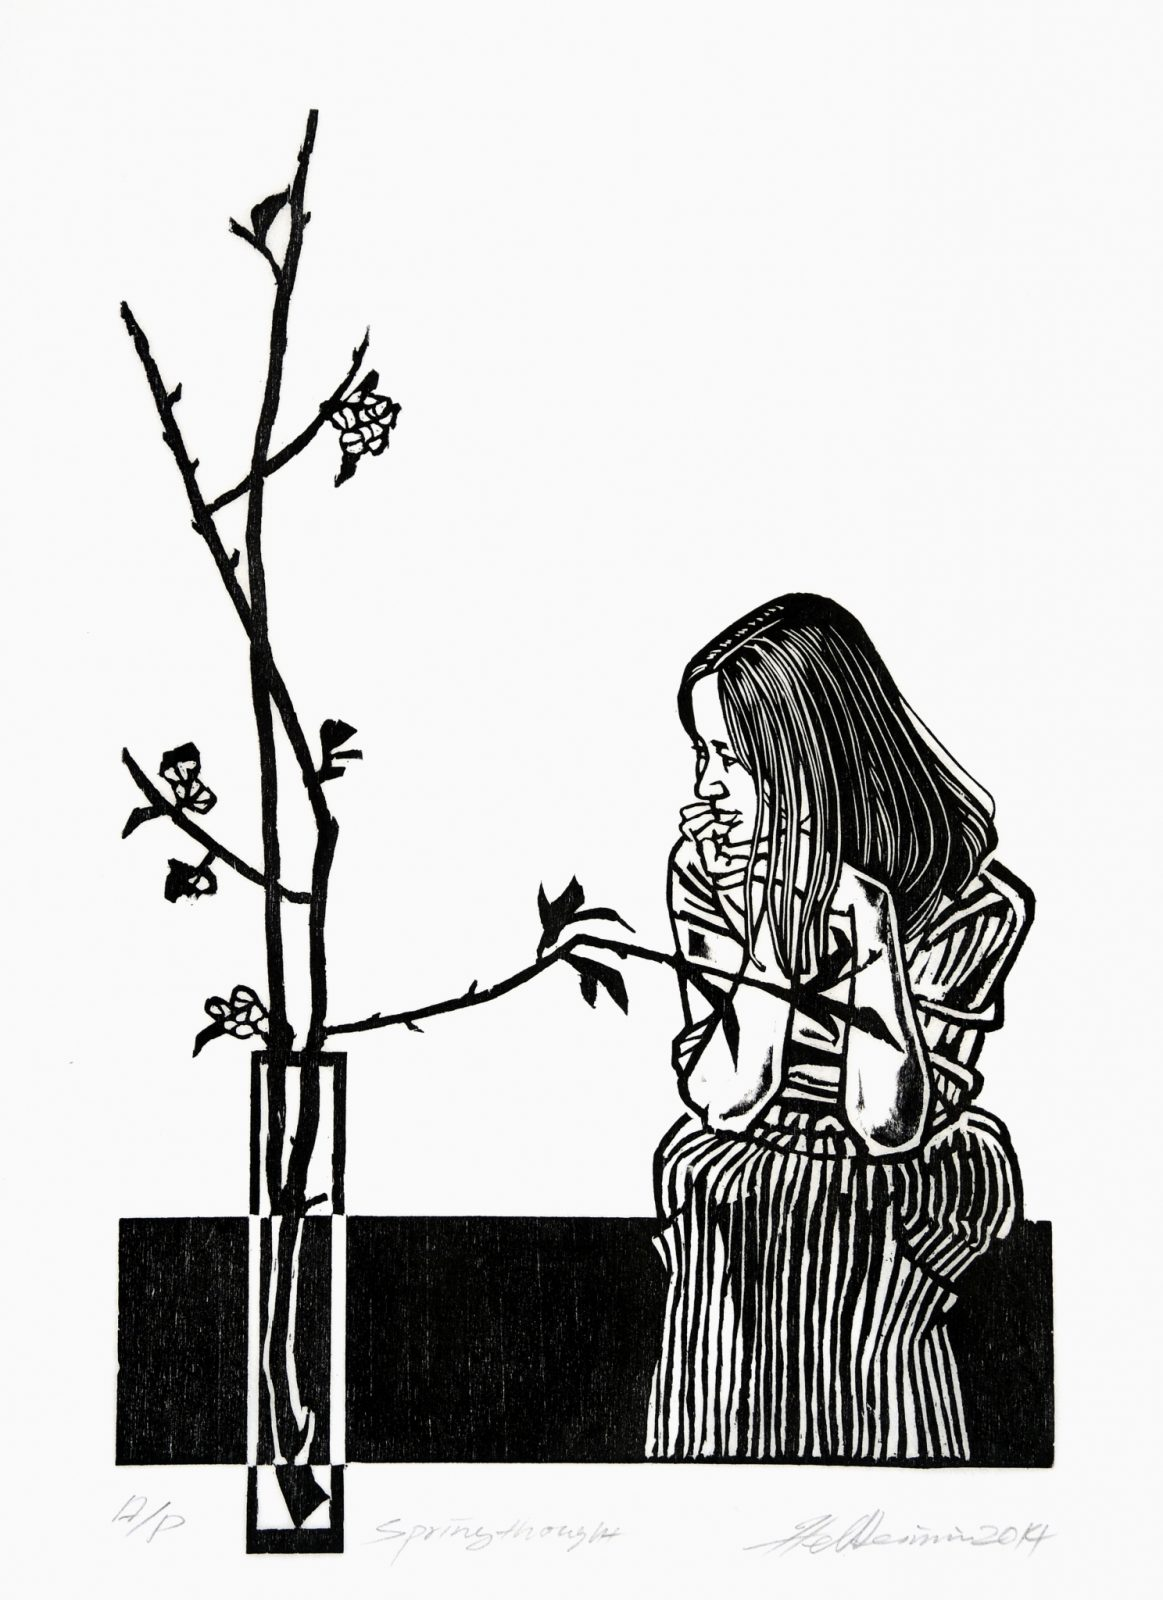 2014 Spring thought 30x19.6 cm woodcut edition 60